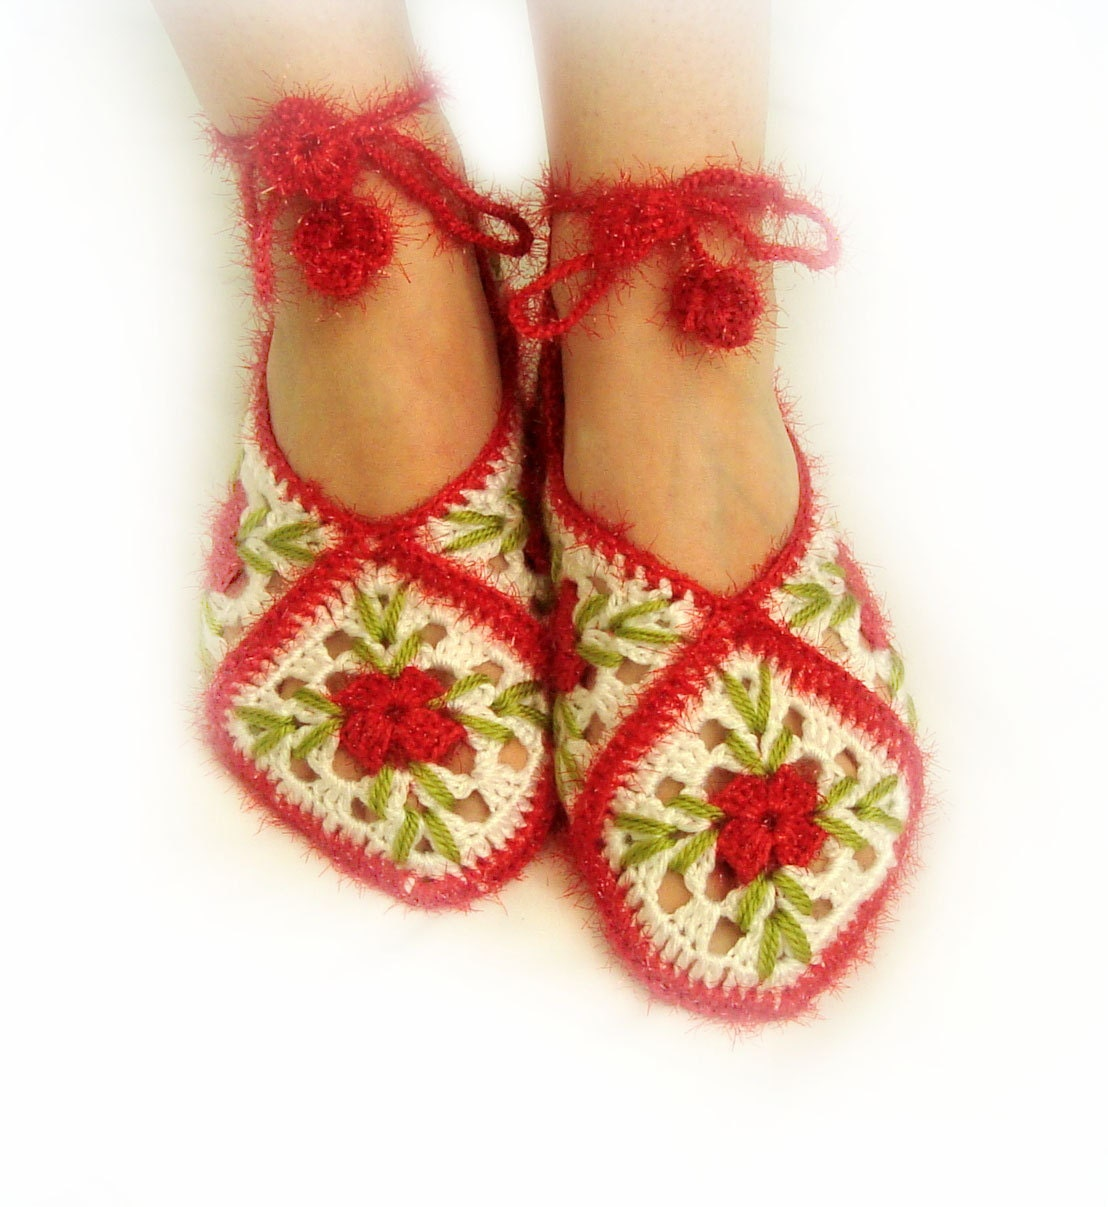 white, lust red, spring bud green home slippers, socks, white home shoes, holiday, style, mothers day - LovelyKnitShop